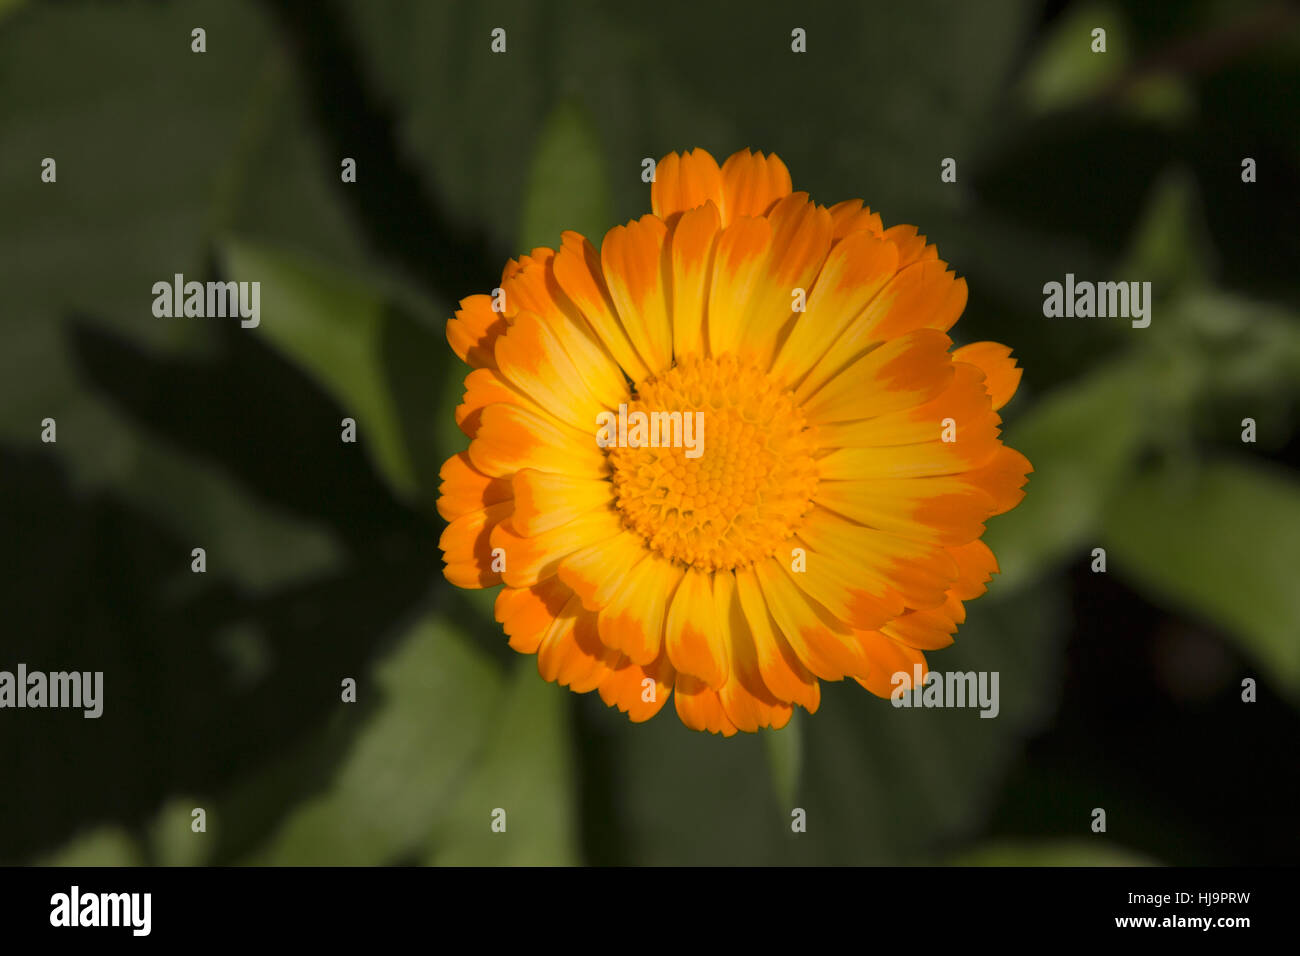 Orange Calendula Flower With Yellow Center Close Up Blurred Stock